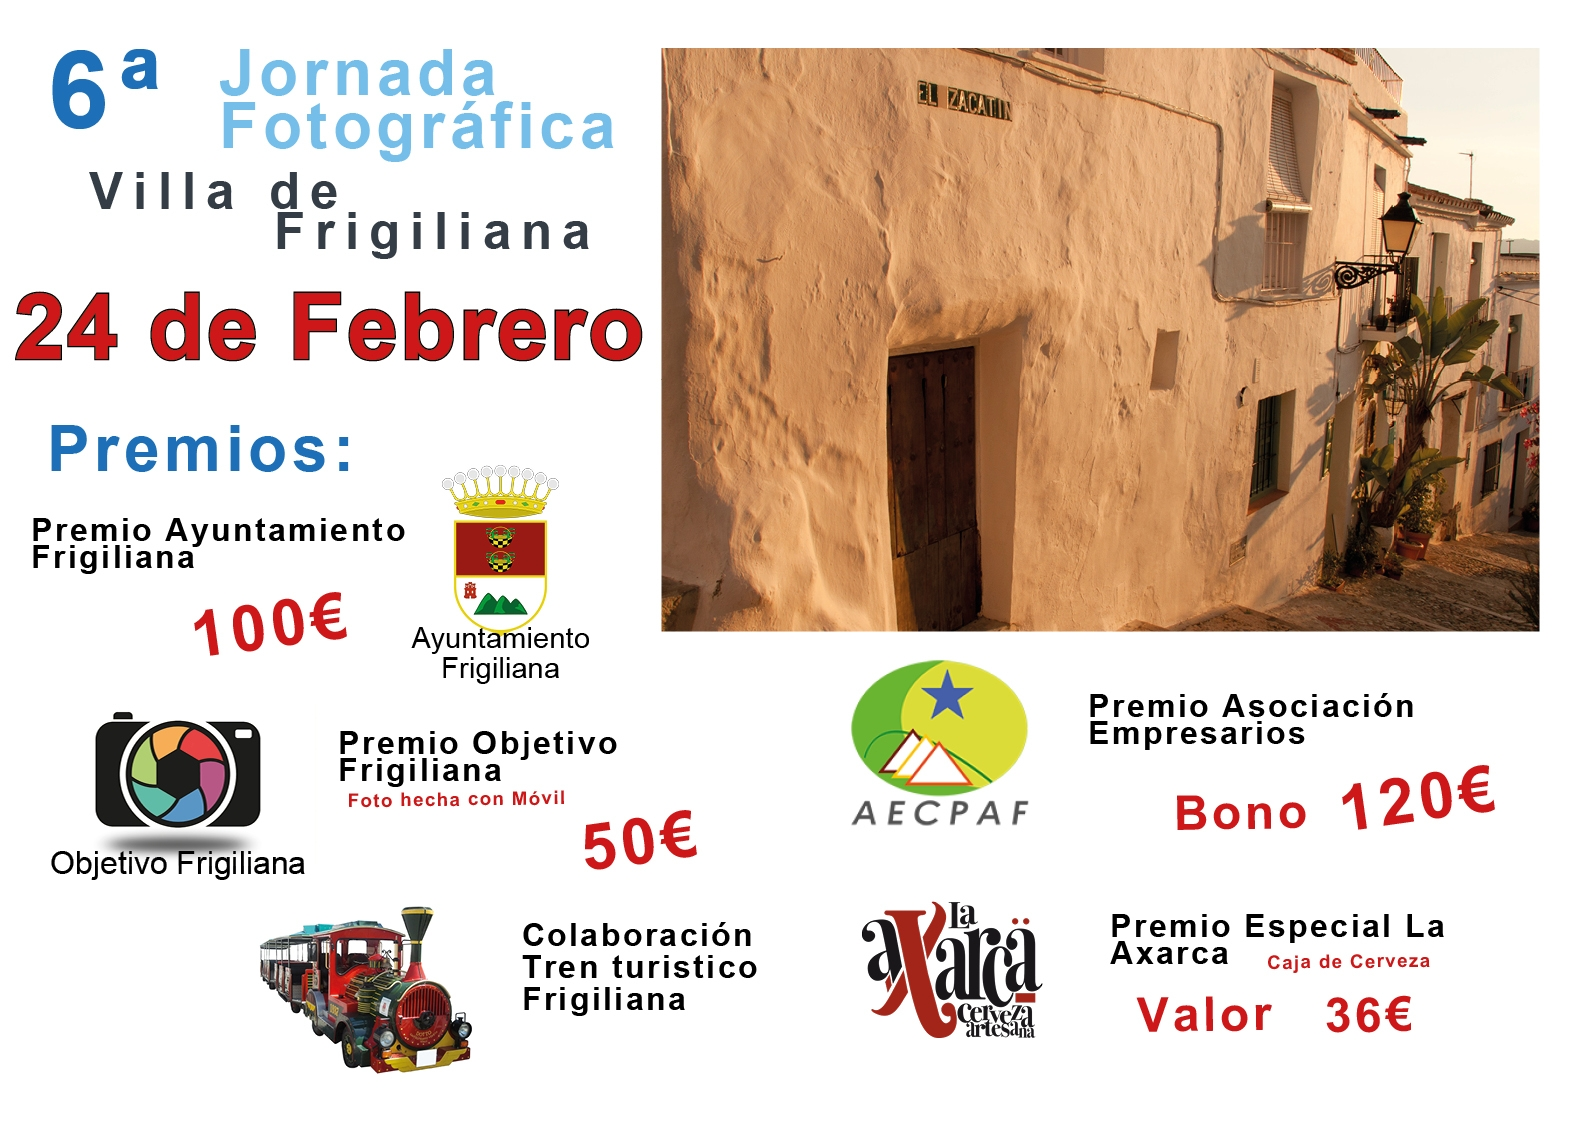 6th Villa de Frigiliana Photographic Conference